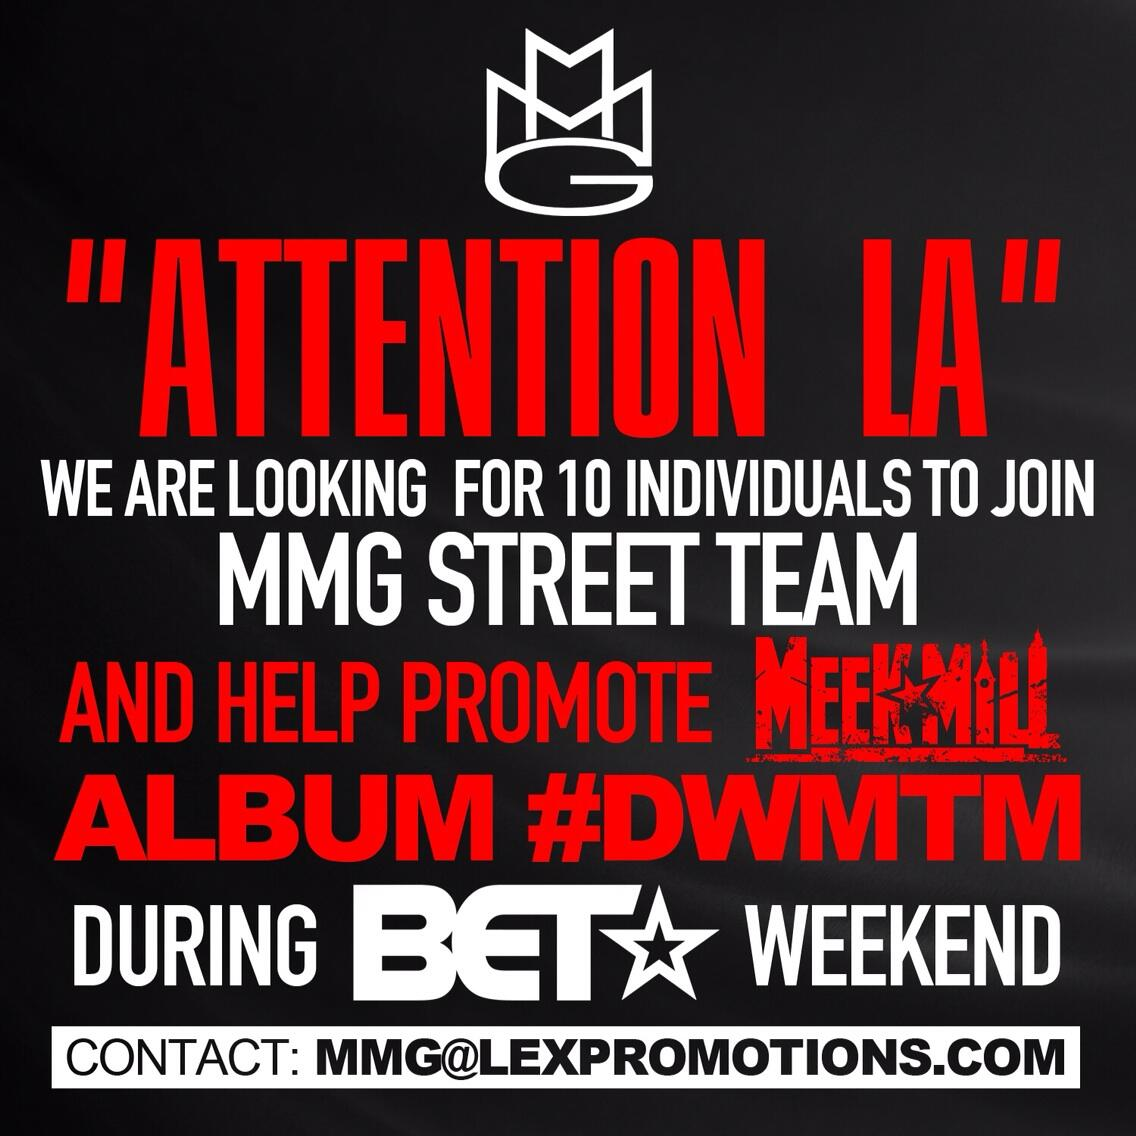 #LA #BETweekend we here! Join the #MMG team and help promote @MeekMill album #DWMTM http://t.co/m3LMGFmbfF